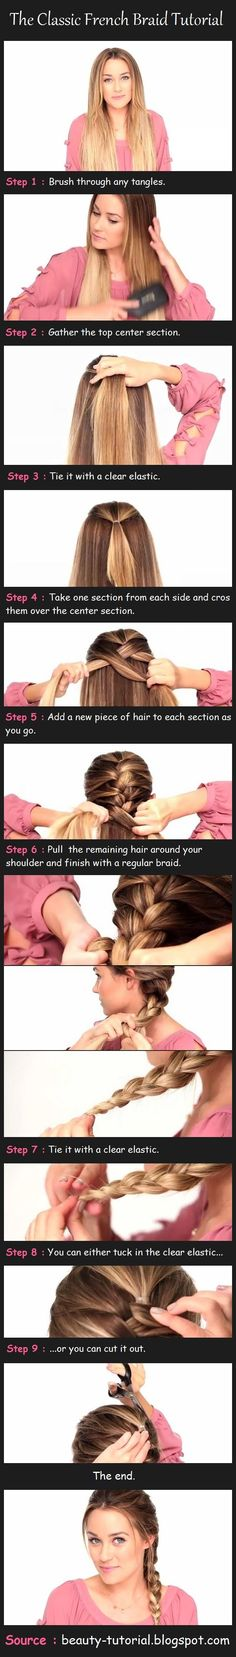 The Classic French Braid Tutorial   Beauty Tutorials